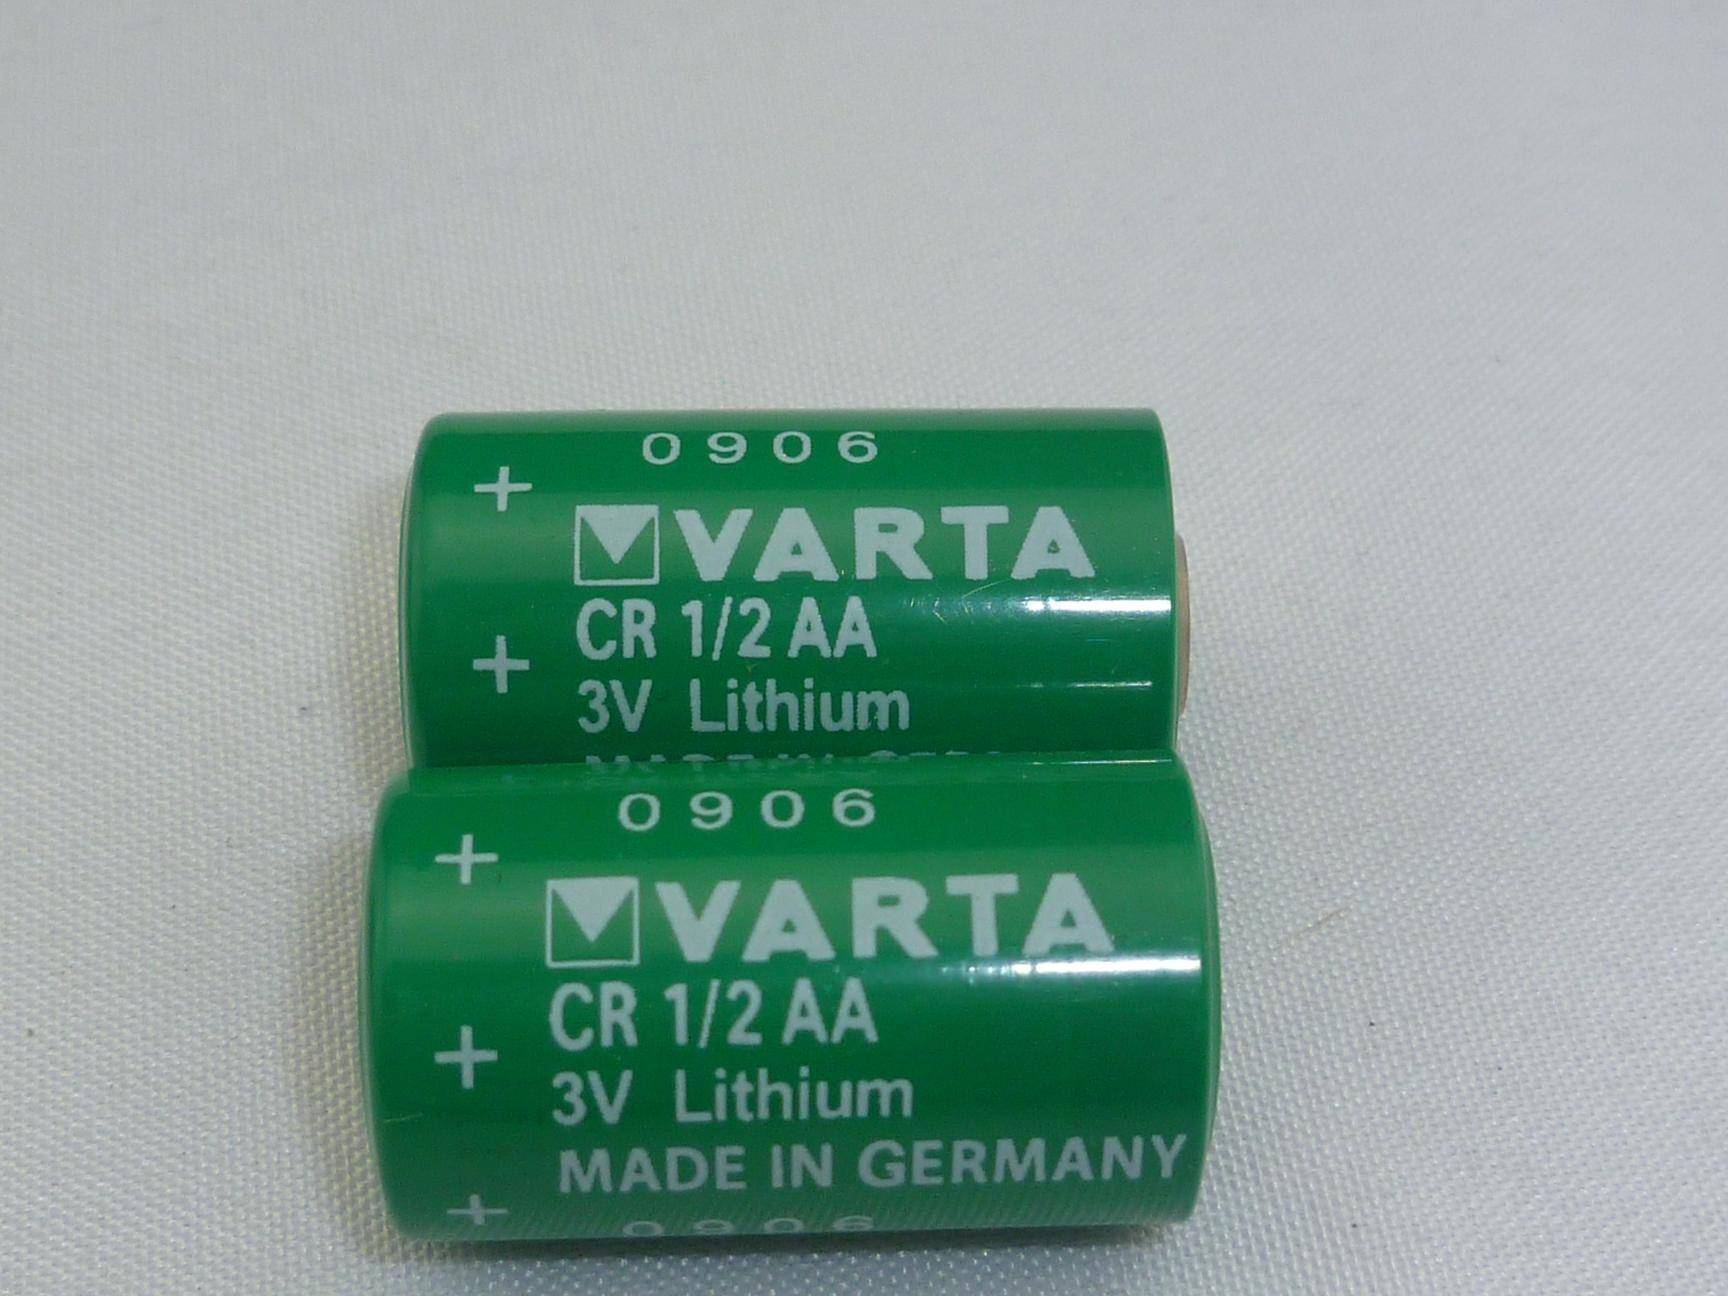 VARTA 3V Lithium Battery CR1/2AA